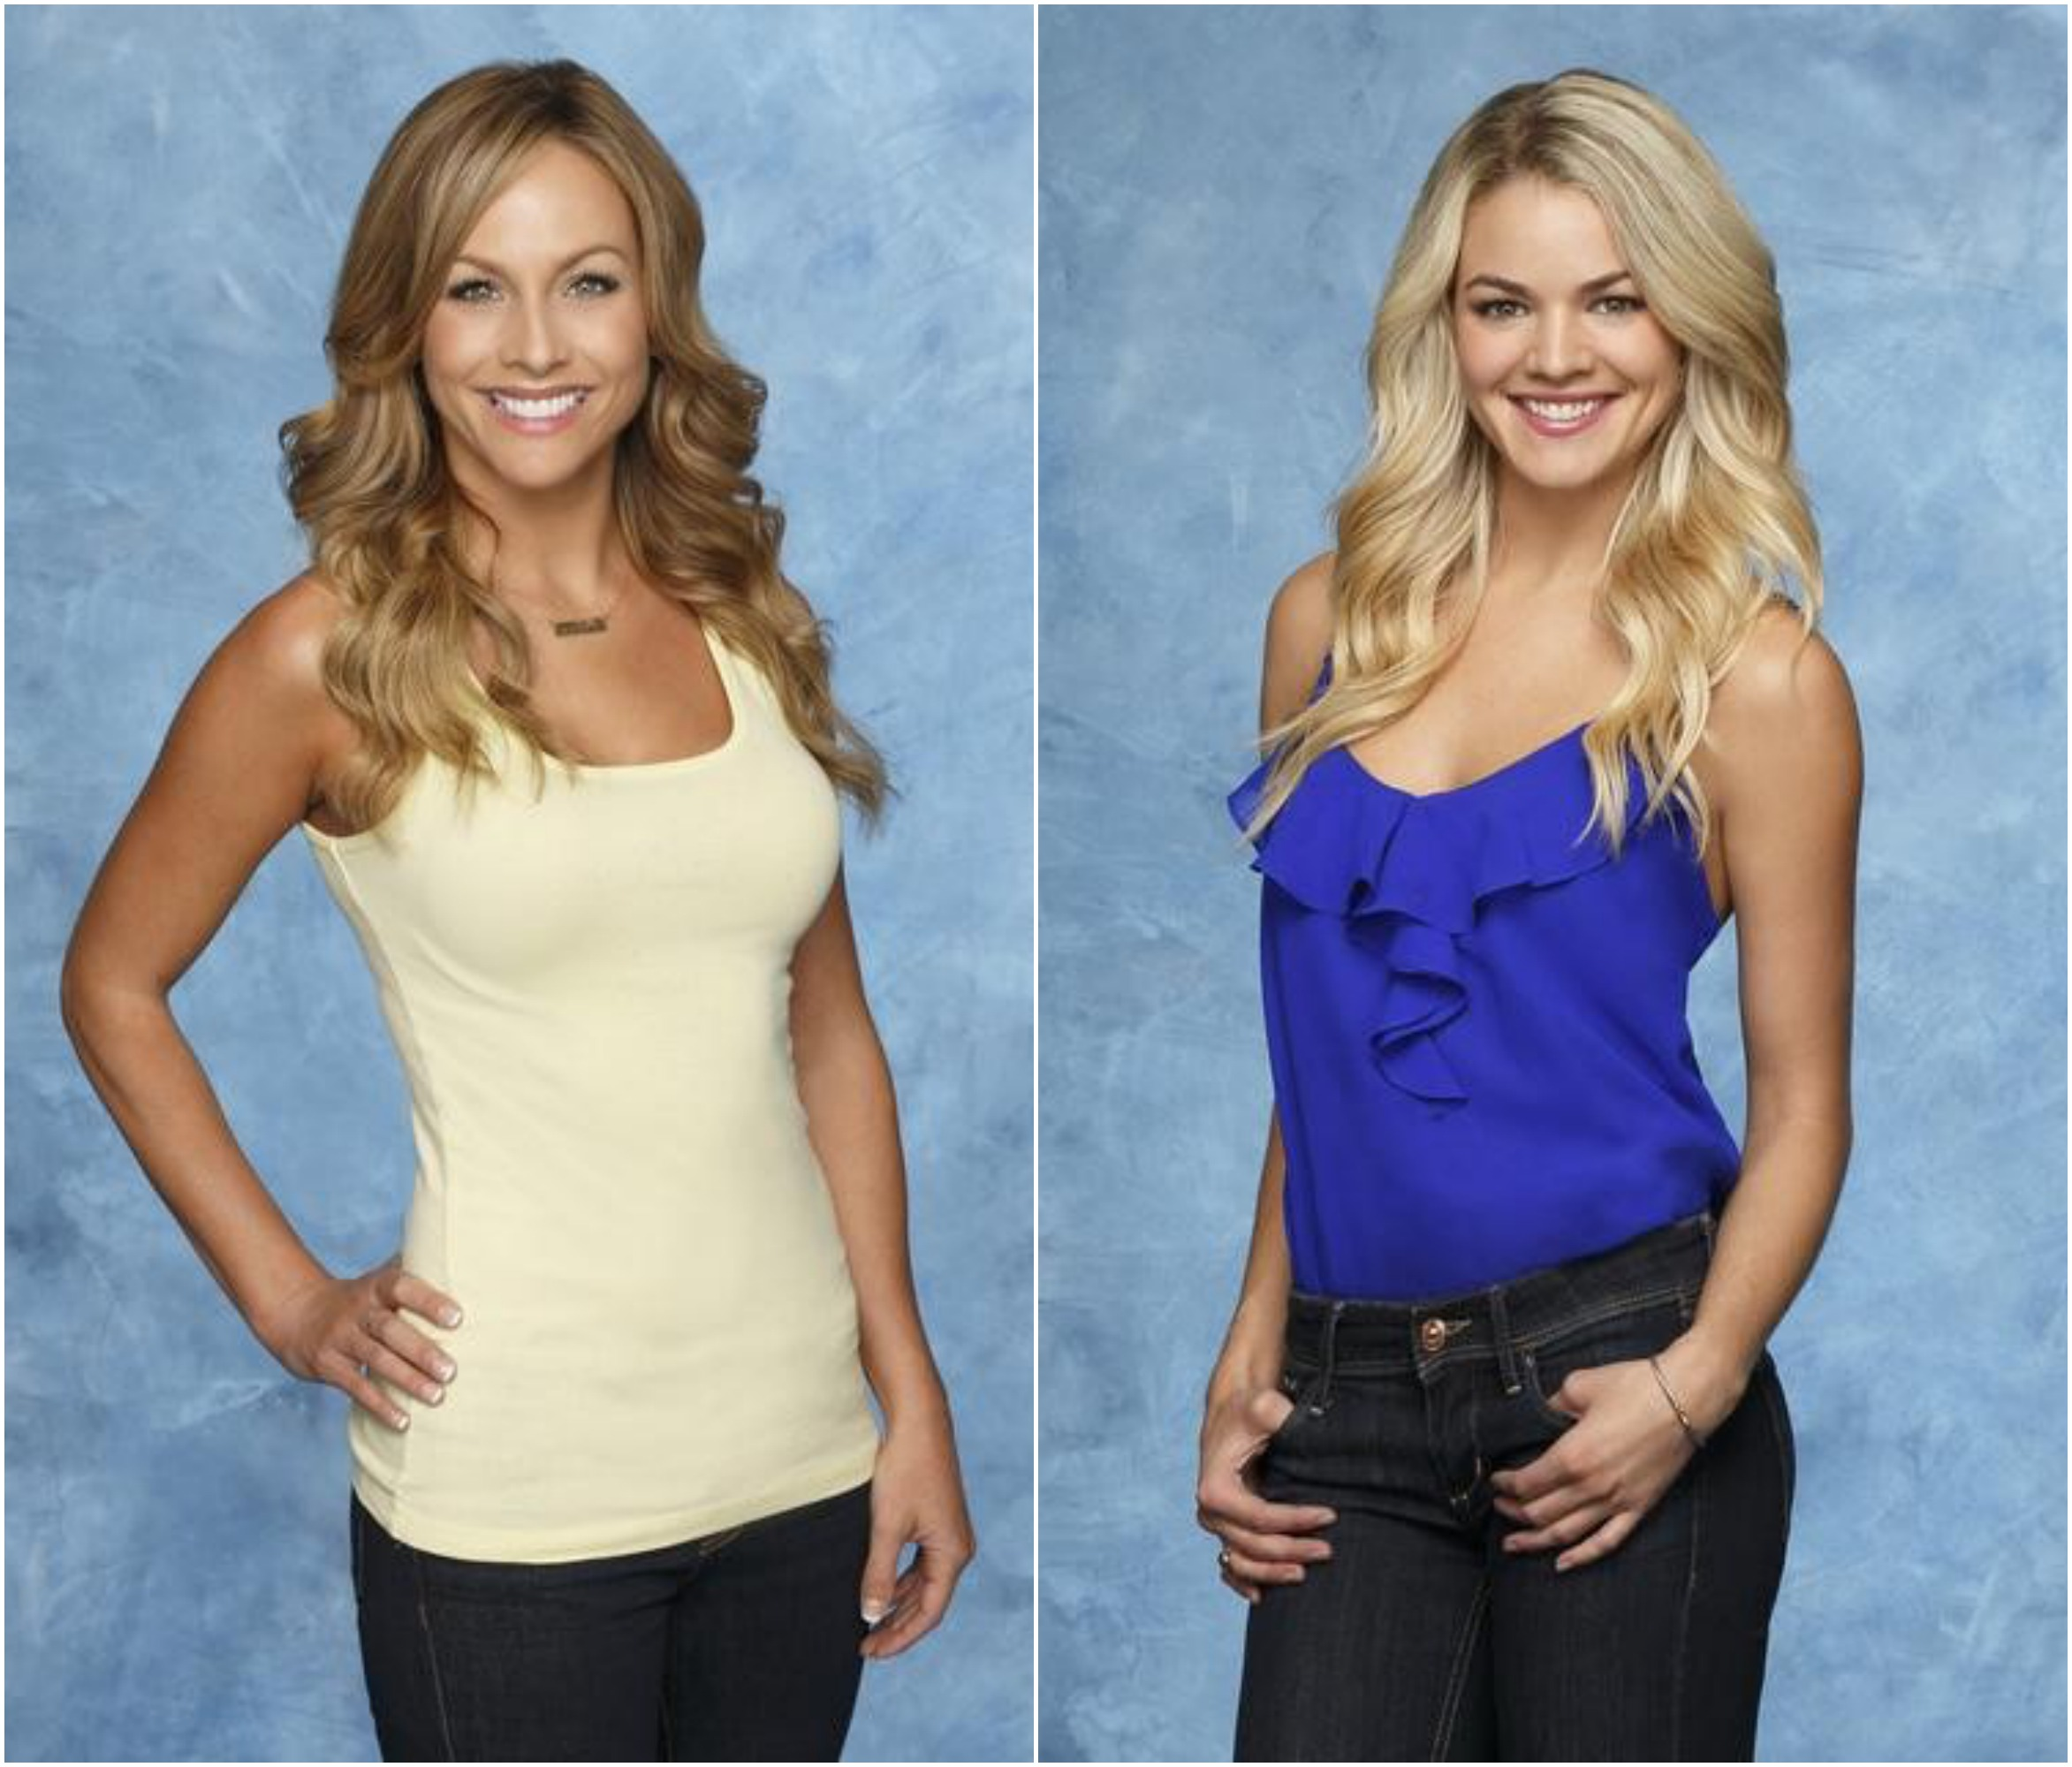 The Bachelor 2014 Spoilers: Clare or Nikki For The Win?